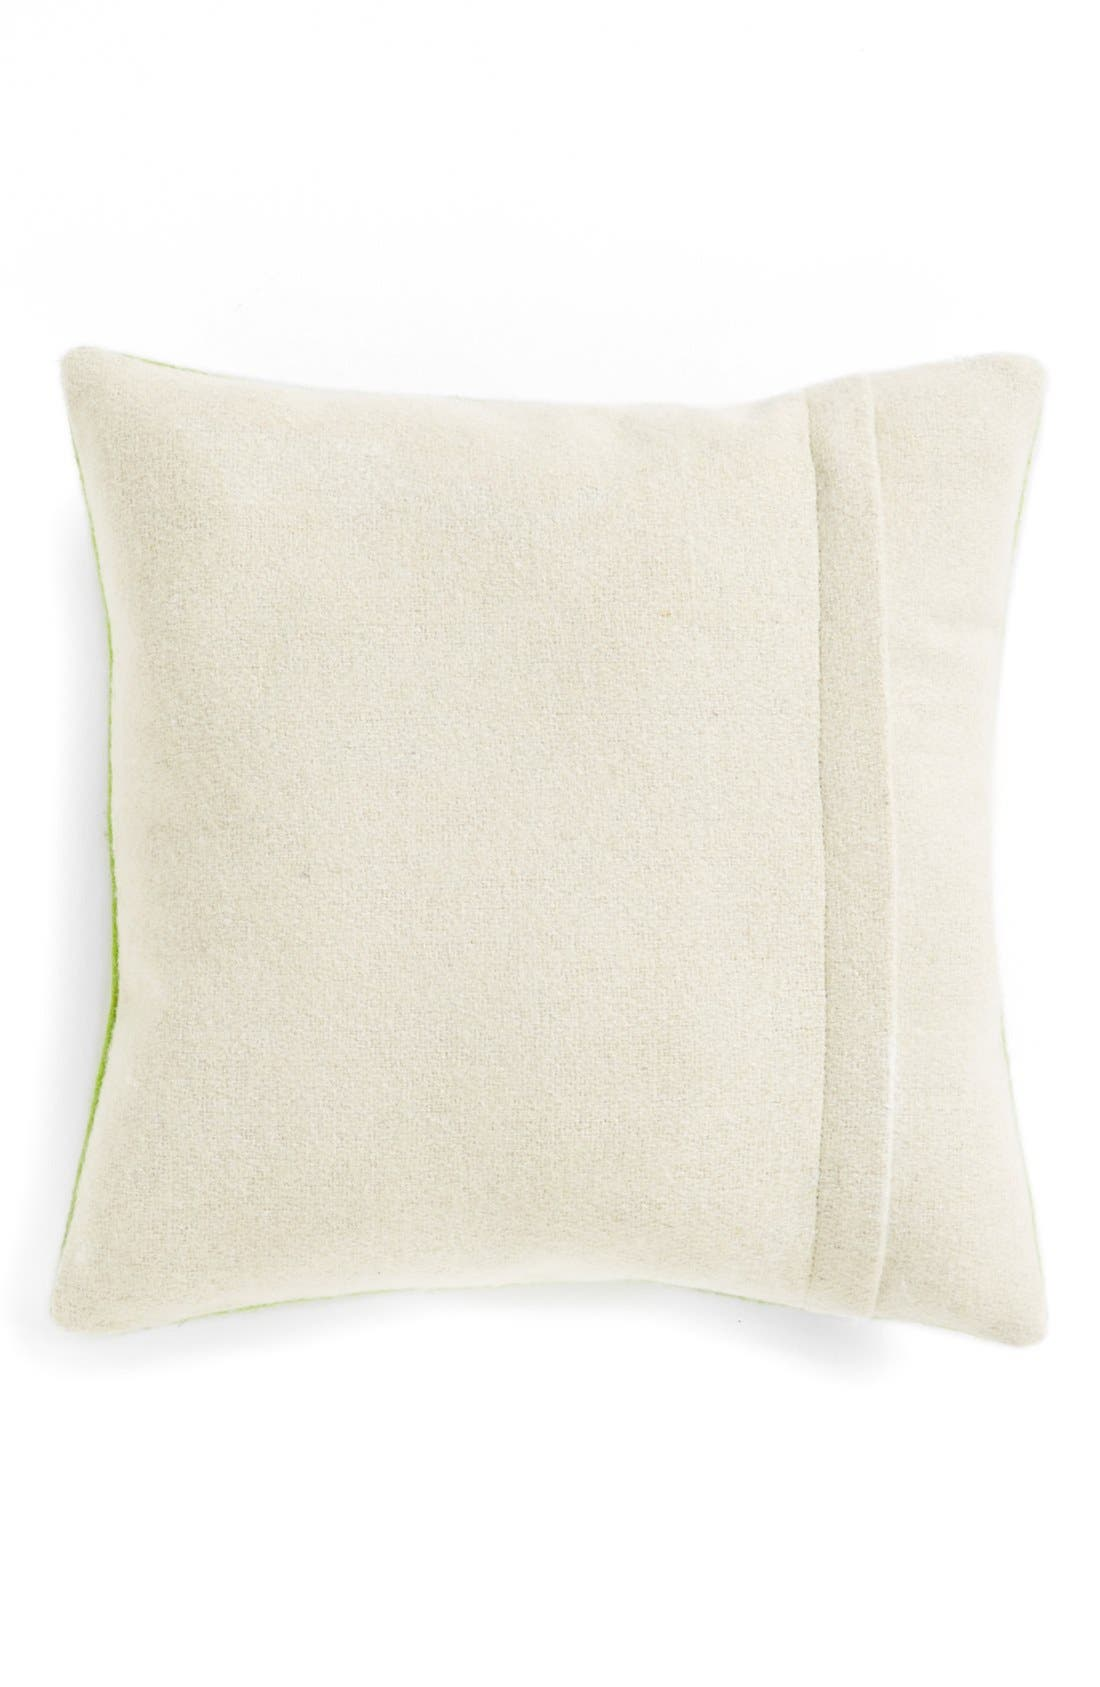 Alternate Image 2  - Amity Home 'Turtle' Decorative Pillow